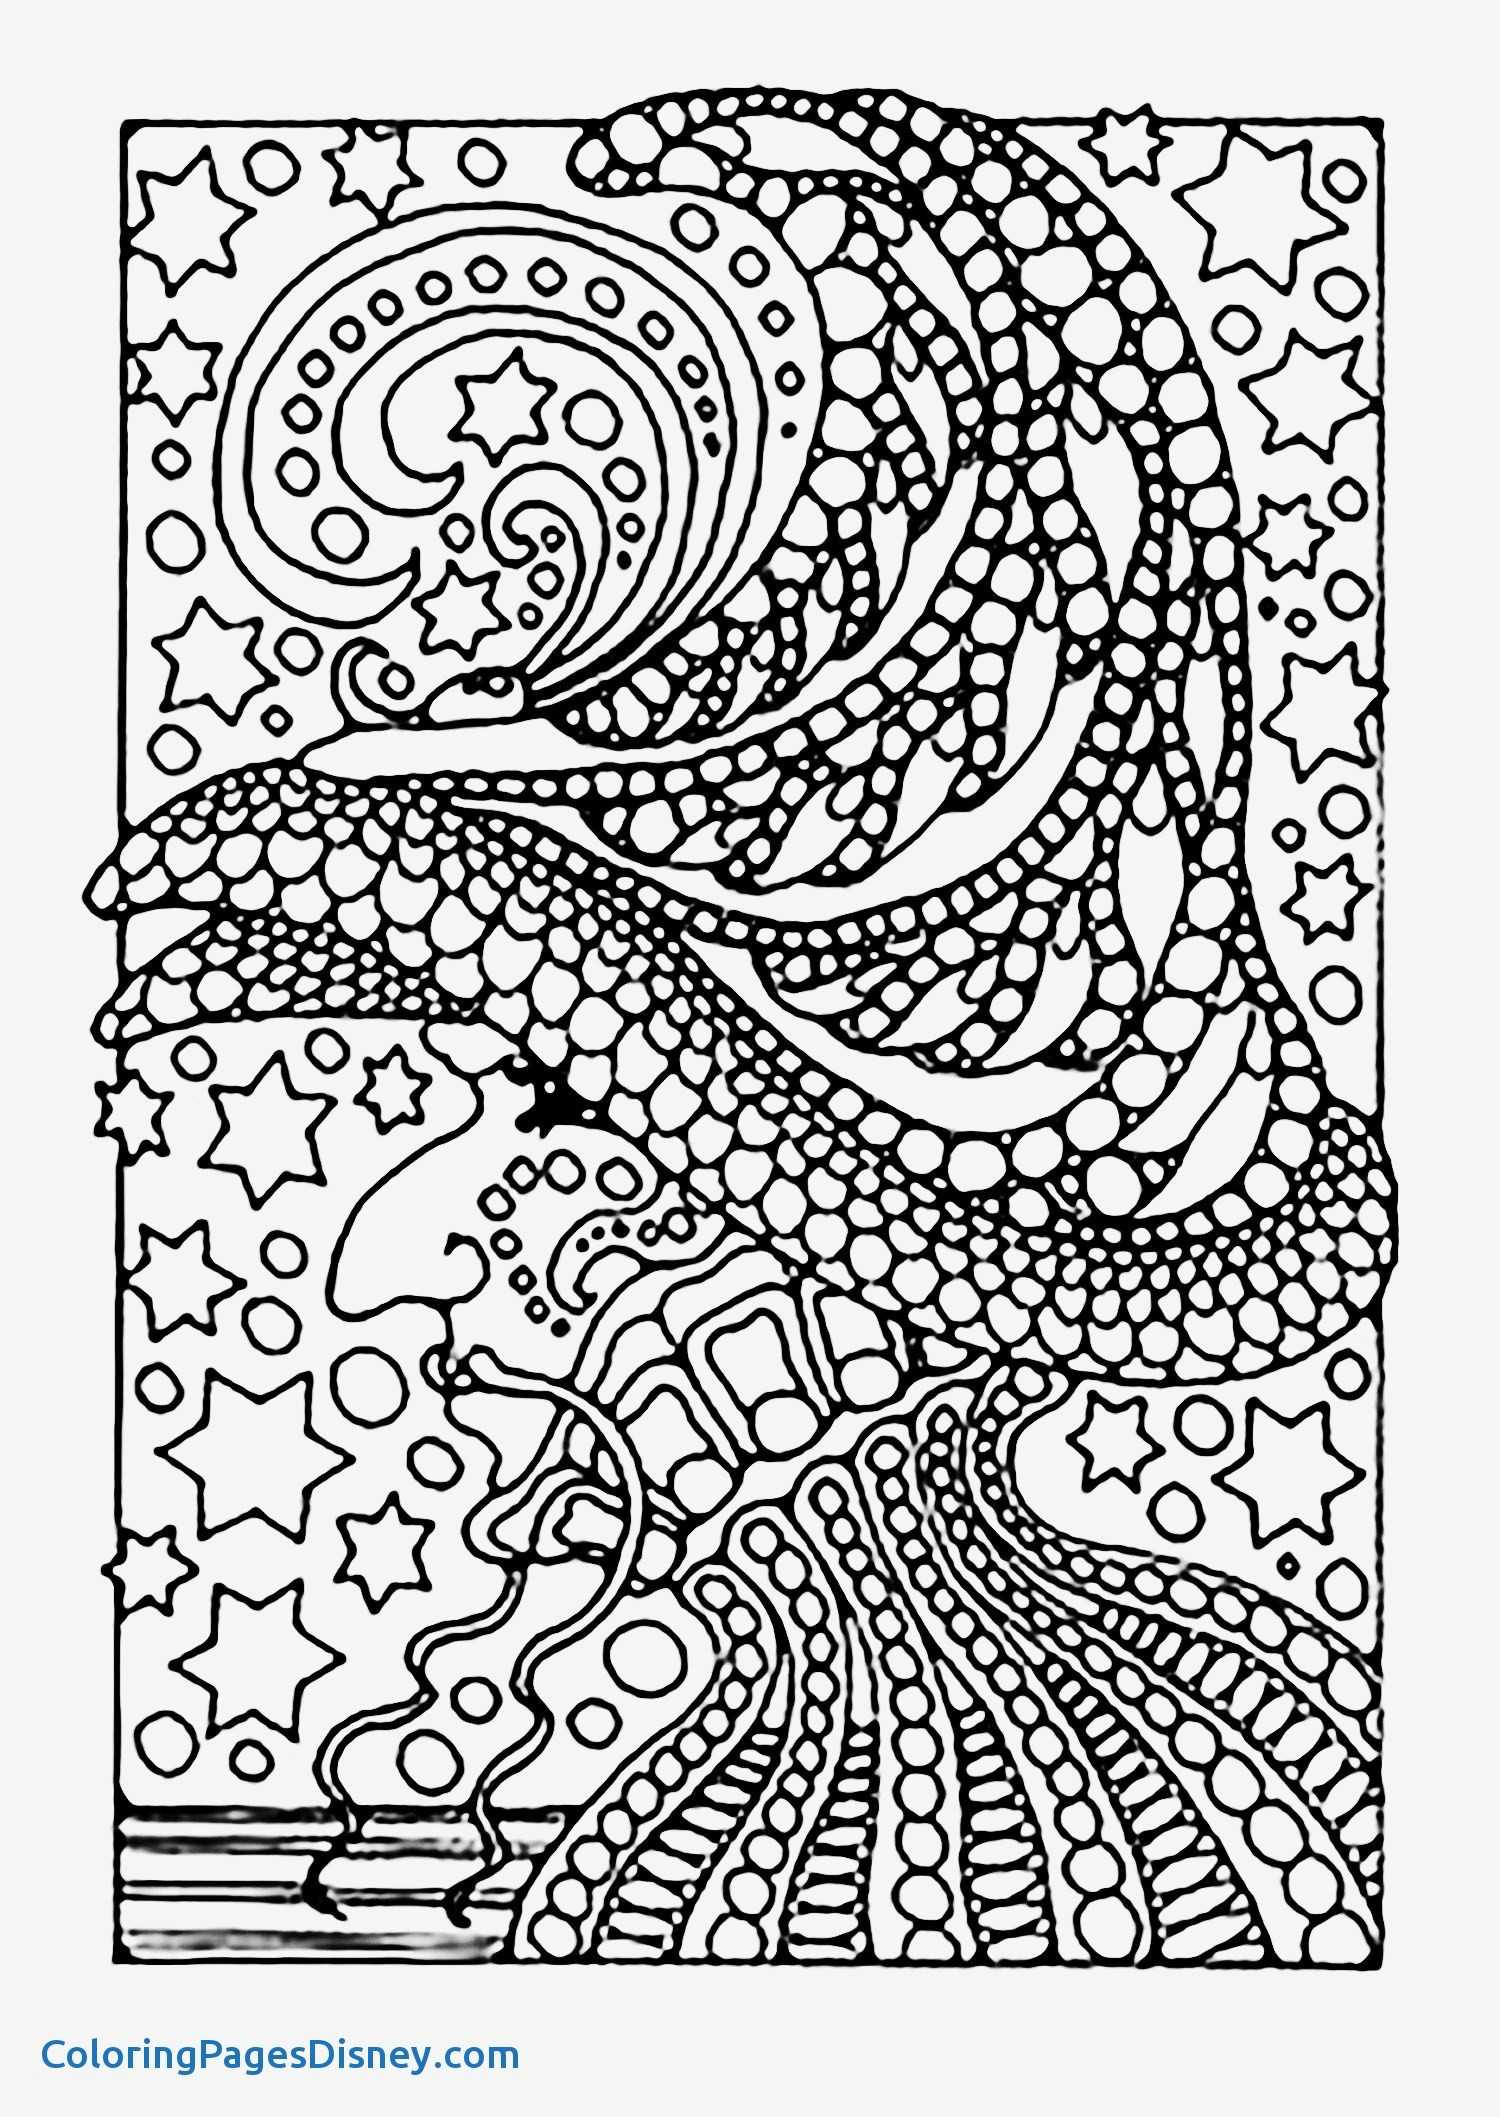 Parts Of A Flower Worksheet together with 35 Luxury Flower Coloring Books Collection